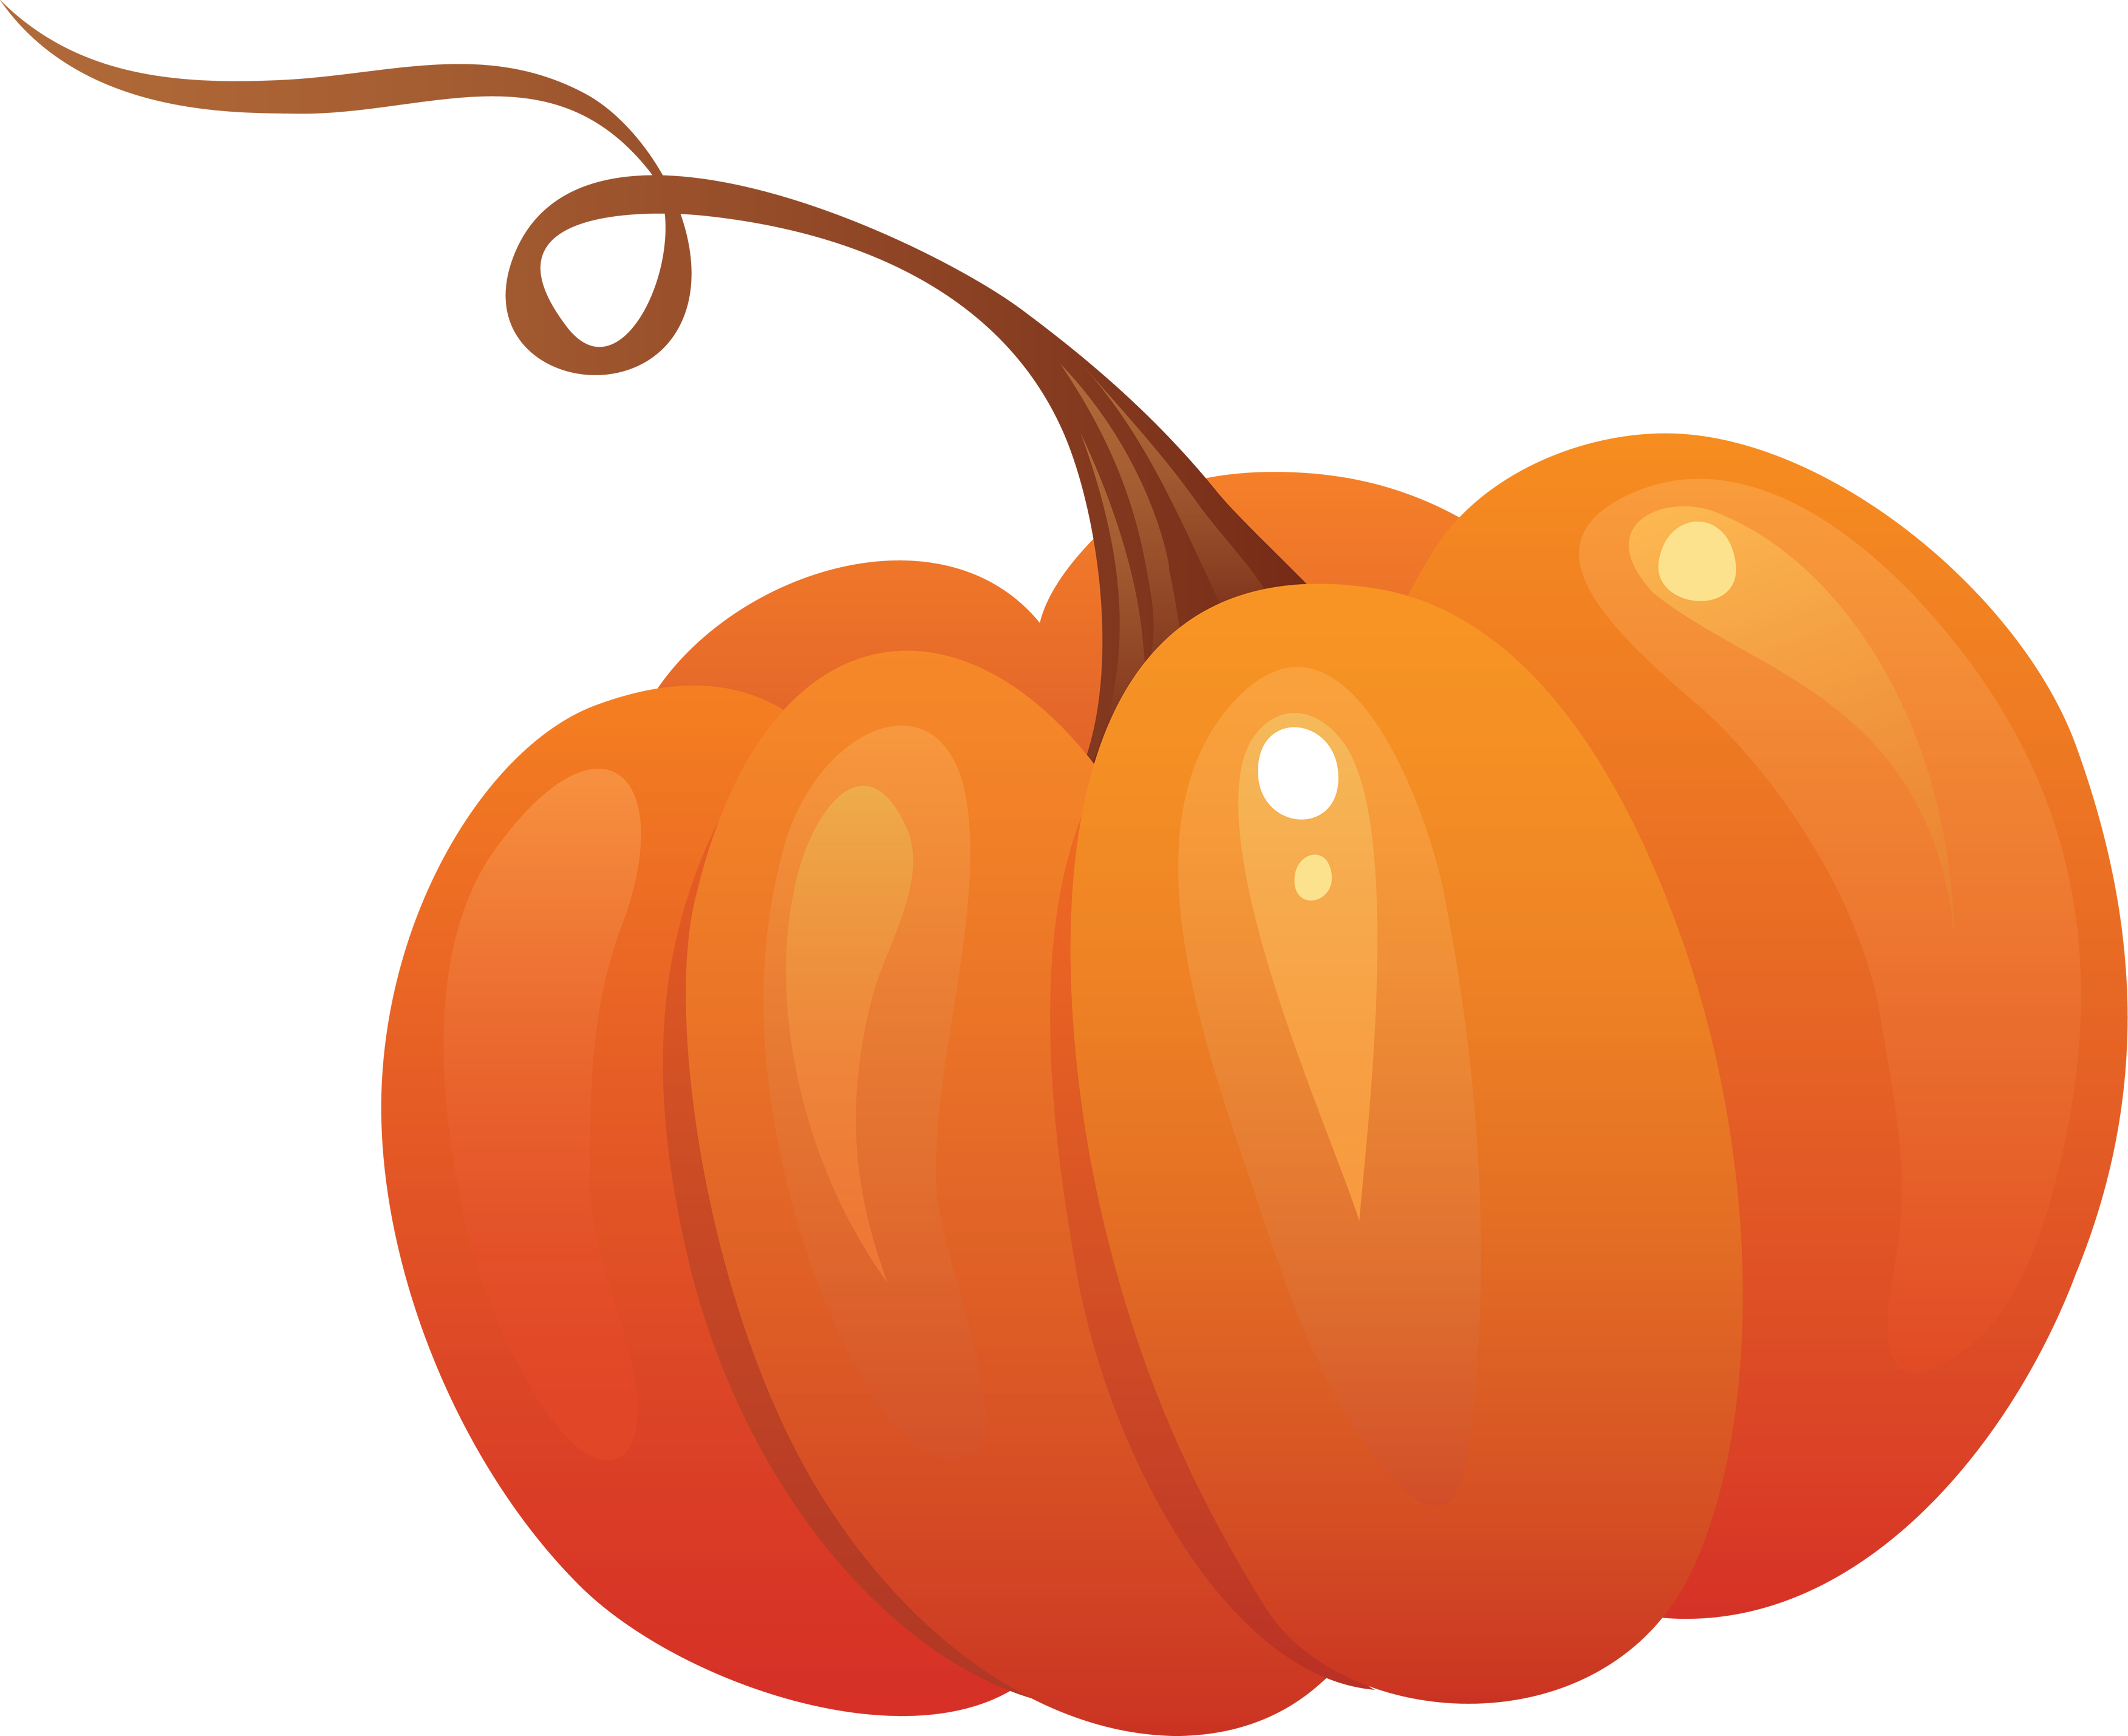 Fall pumpkin background clipart clipart library Pumpkin Clipart Transparent Background Free collection | Download ... clipart library